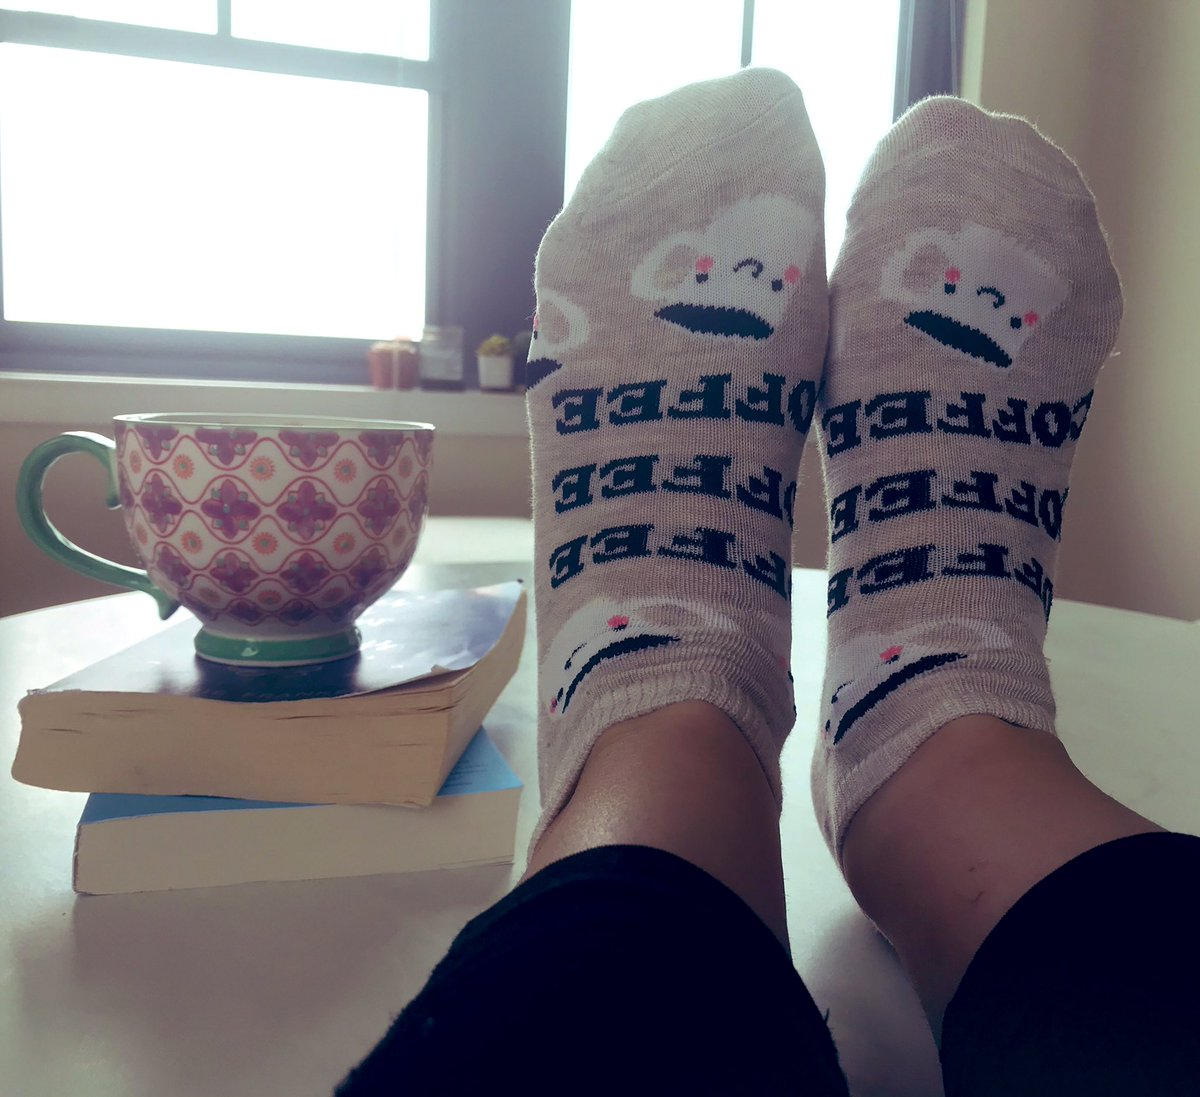 Coffee socks and extra coffee for this rainy morning! <a target='_blank' href='http://search.twitter.com/search?q=hfbtweets'><a target='_blank' href='https://twitter.com/hashtag/hfbtweets?src=hash'>#hfbtweets</a></a> <a target='_blank' href='http://search.twitter.com/search?q=hfbtogether'><a target='_blank' href='https://twitter.com/hashtag/hfbtogether?src=hash'>#hfbtogether</a></a> <a target='_blank' href='https://t.co/qxiECSlCZW'>https://t.co/qxiECSlCZW</a>